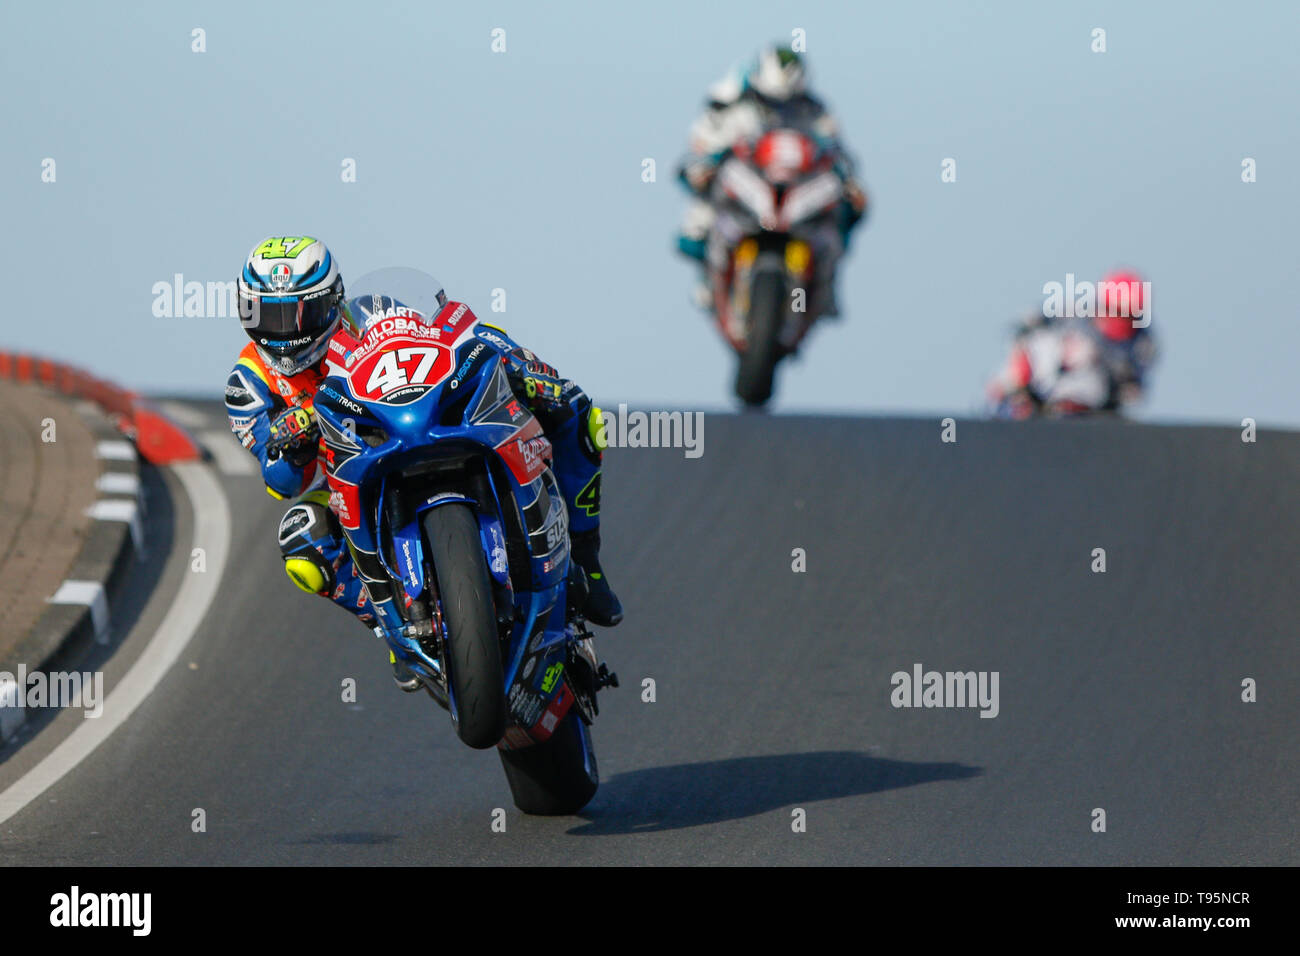 Portrush, Northern Ireland. 16th May, 2019. International North West 200 Motorcycle road racing, Thursday practice and evening racing; Richard Cooper (Buildbase Suzuki) takes 6th place in the Superstock race, on his first visit to the NW200 races Credit: Action Plus Sports/Alamy Live News - Stock Image